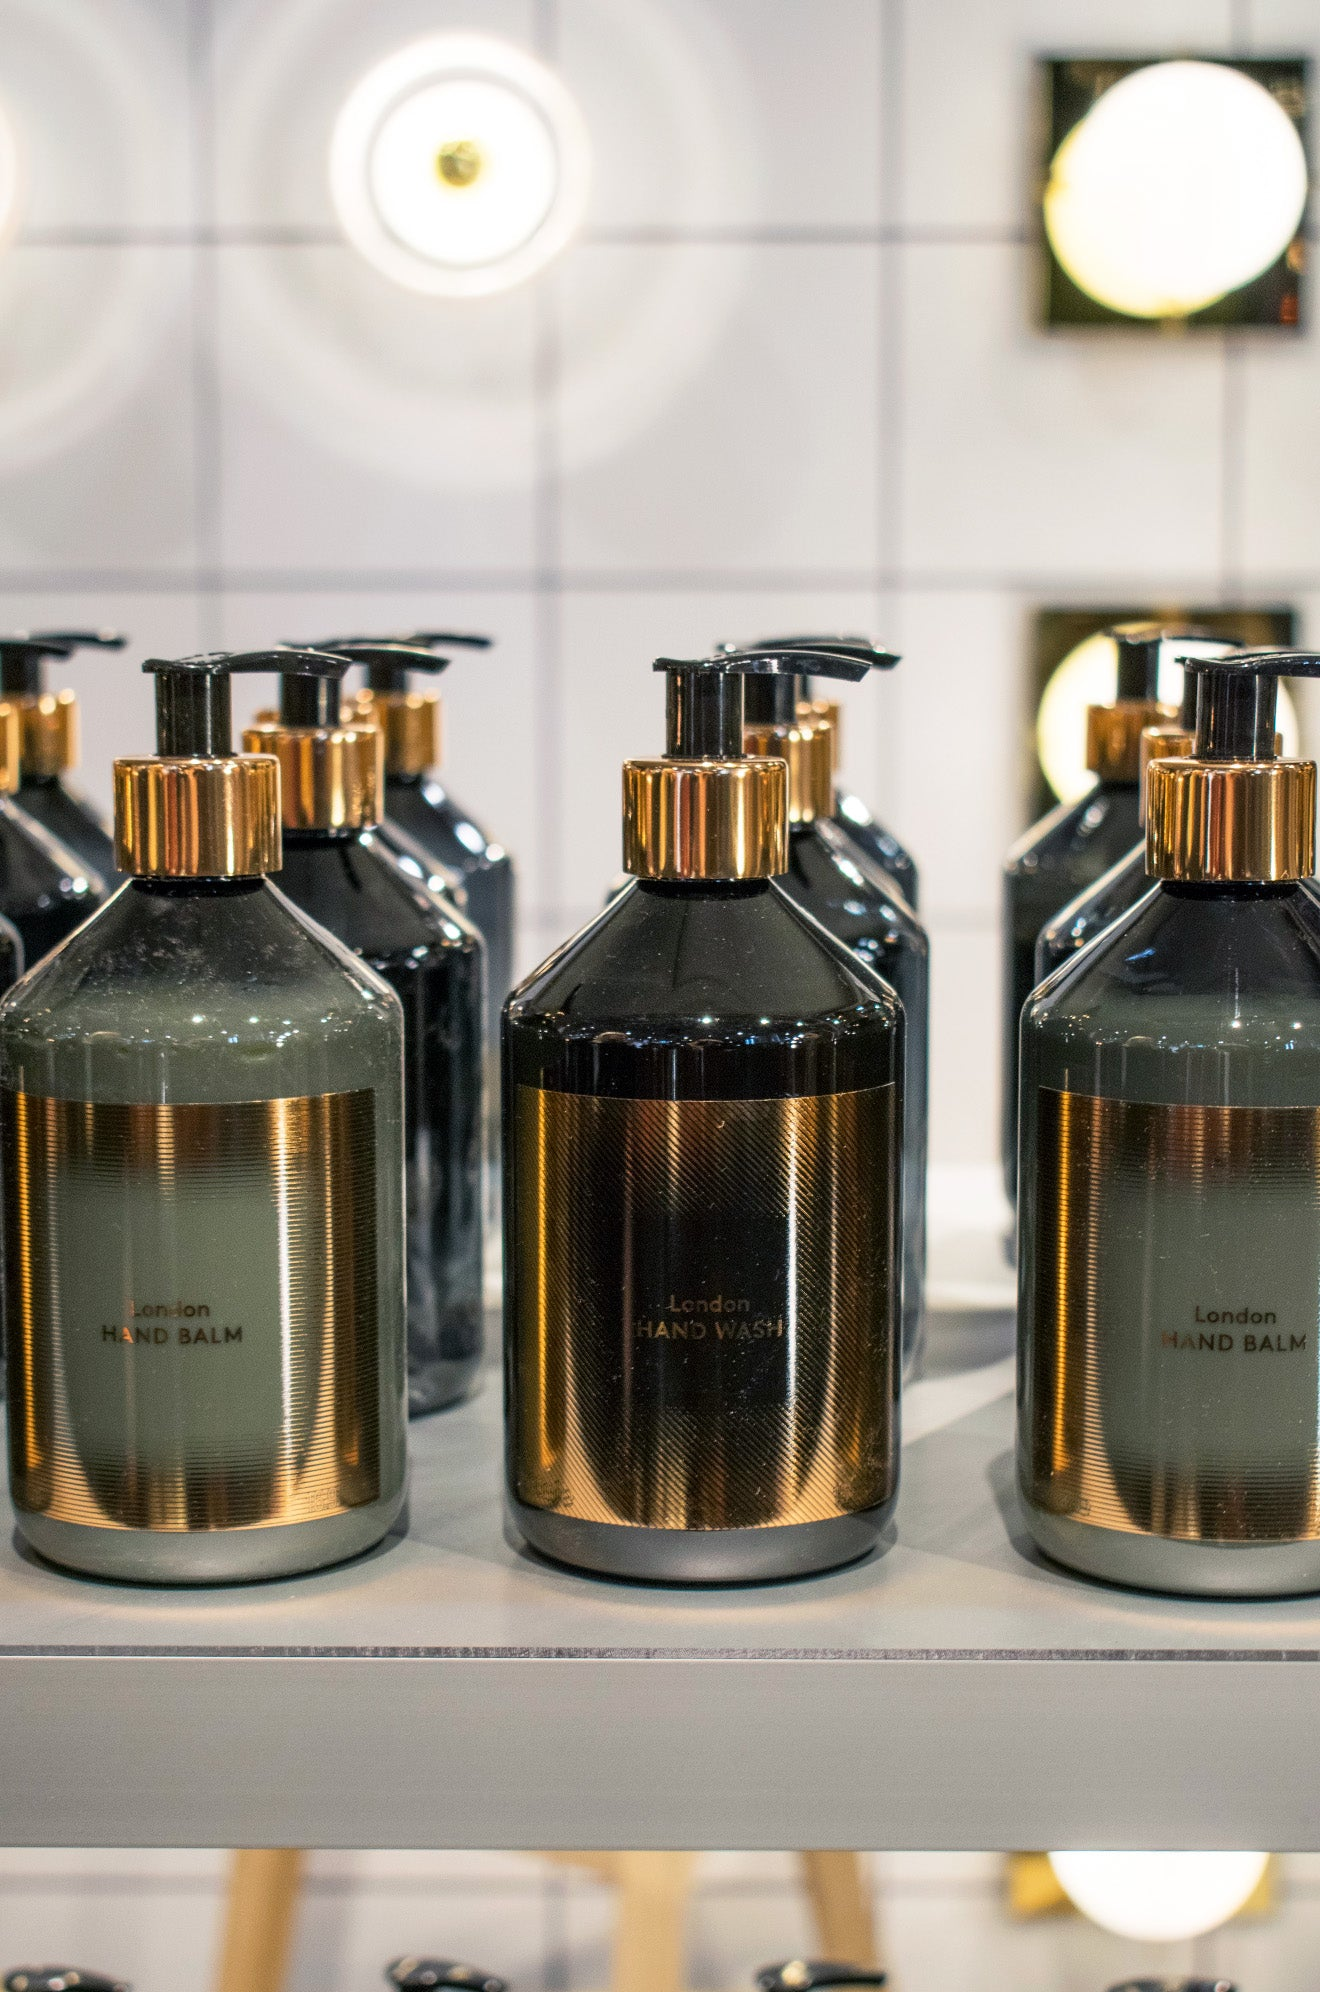 Tom Dixon Wash soap and hand balm at Maison & Objet